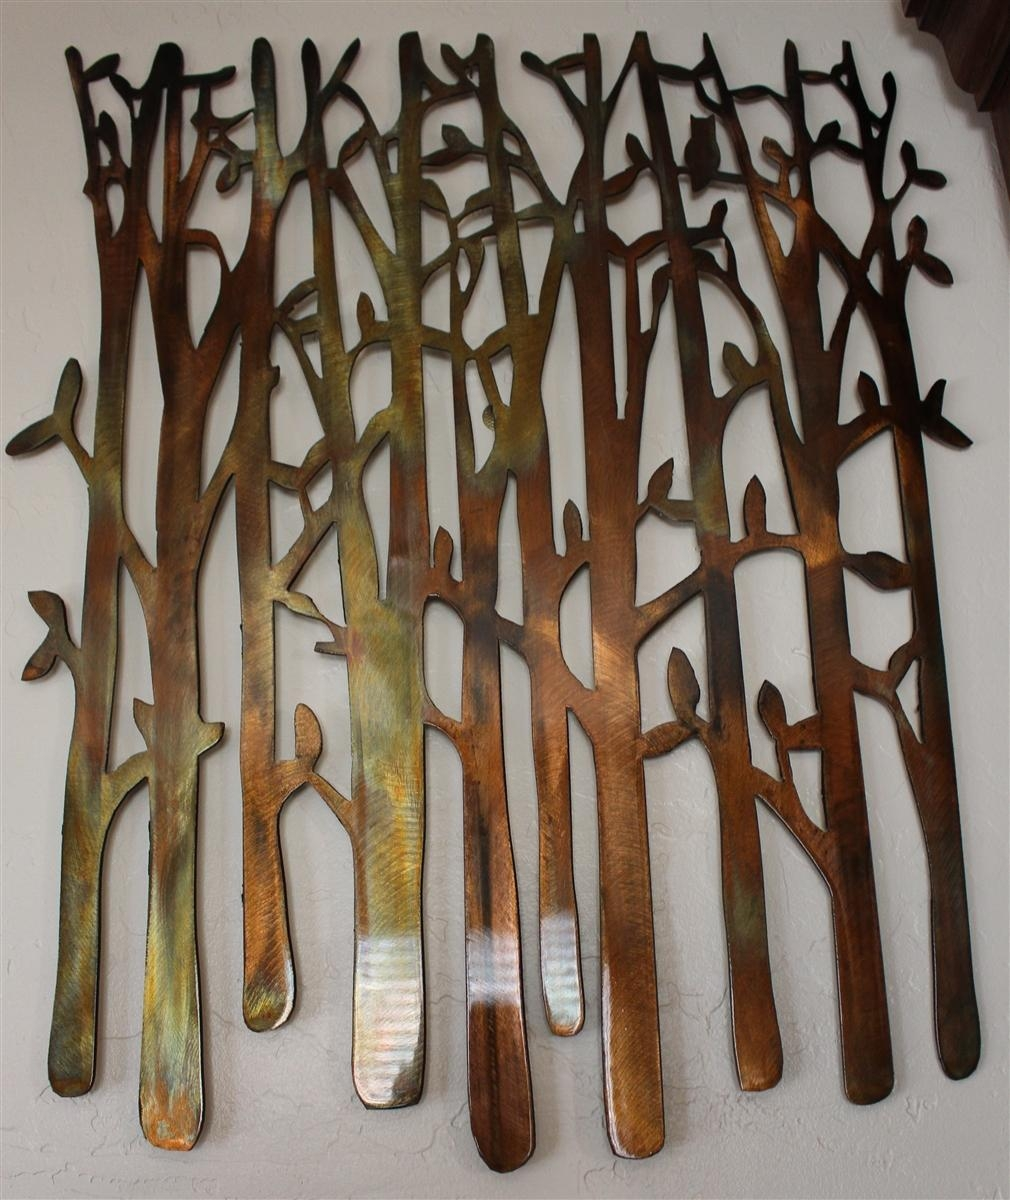 Birch Tree, Birch Tree Metal Art, Bamboo, Bird In The Trees, Bird With Regard To Metallic Wall Art (View 12 of 20)